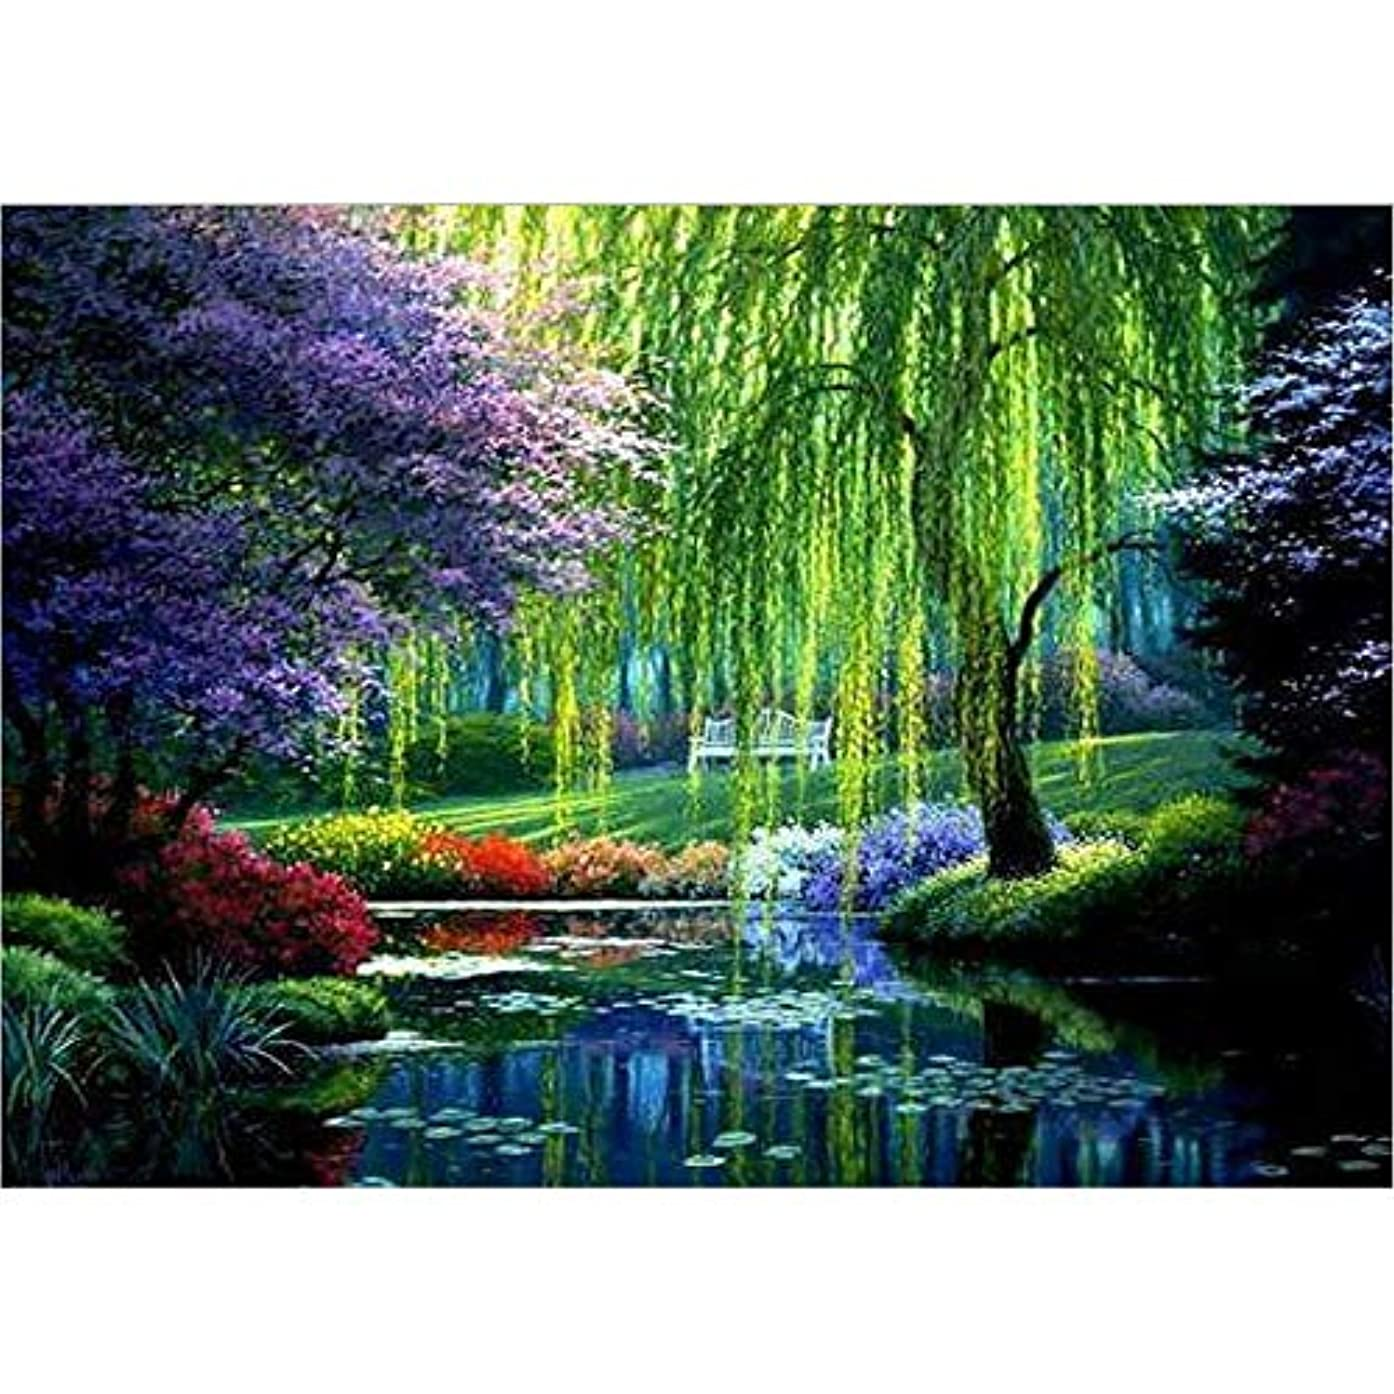 DIY 5D Diamond Painting By Number Kit Round Rhinestone Embroidery Cross Stitch Arts Craft Supply Wall Decor Tree willow(39X29CM/15.4X11.4inch)